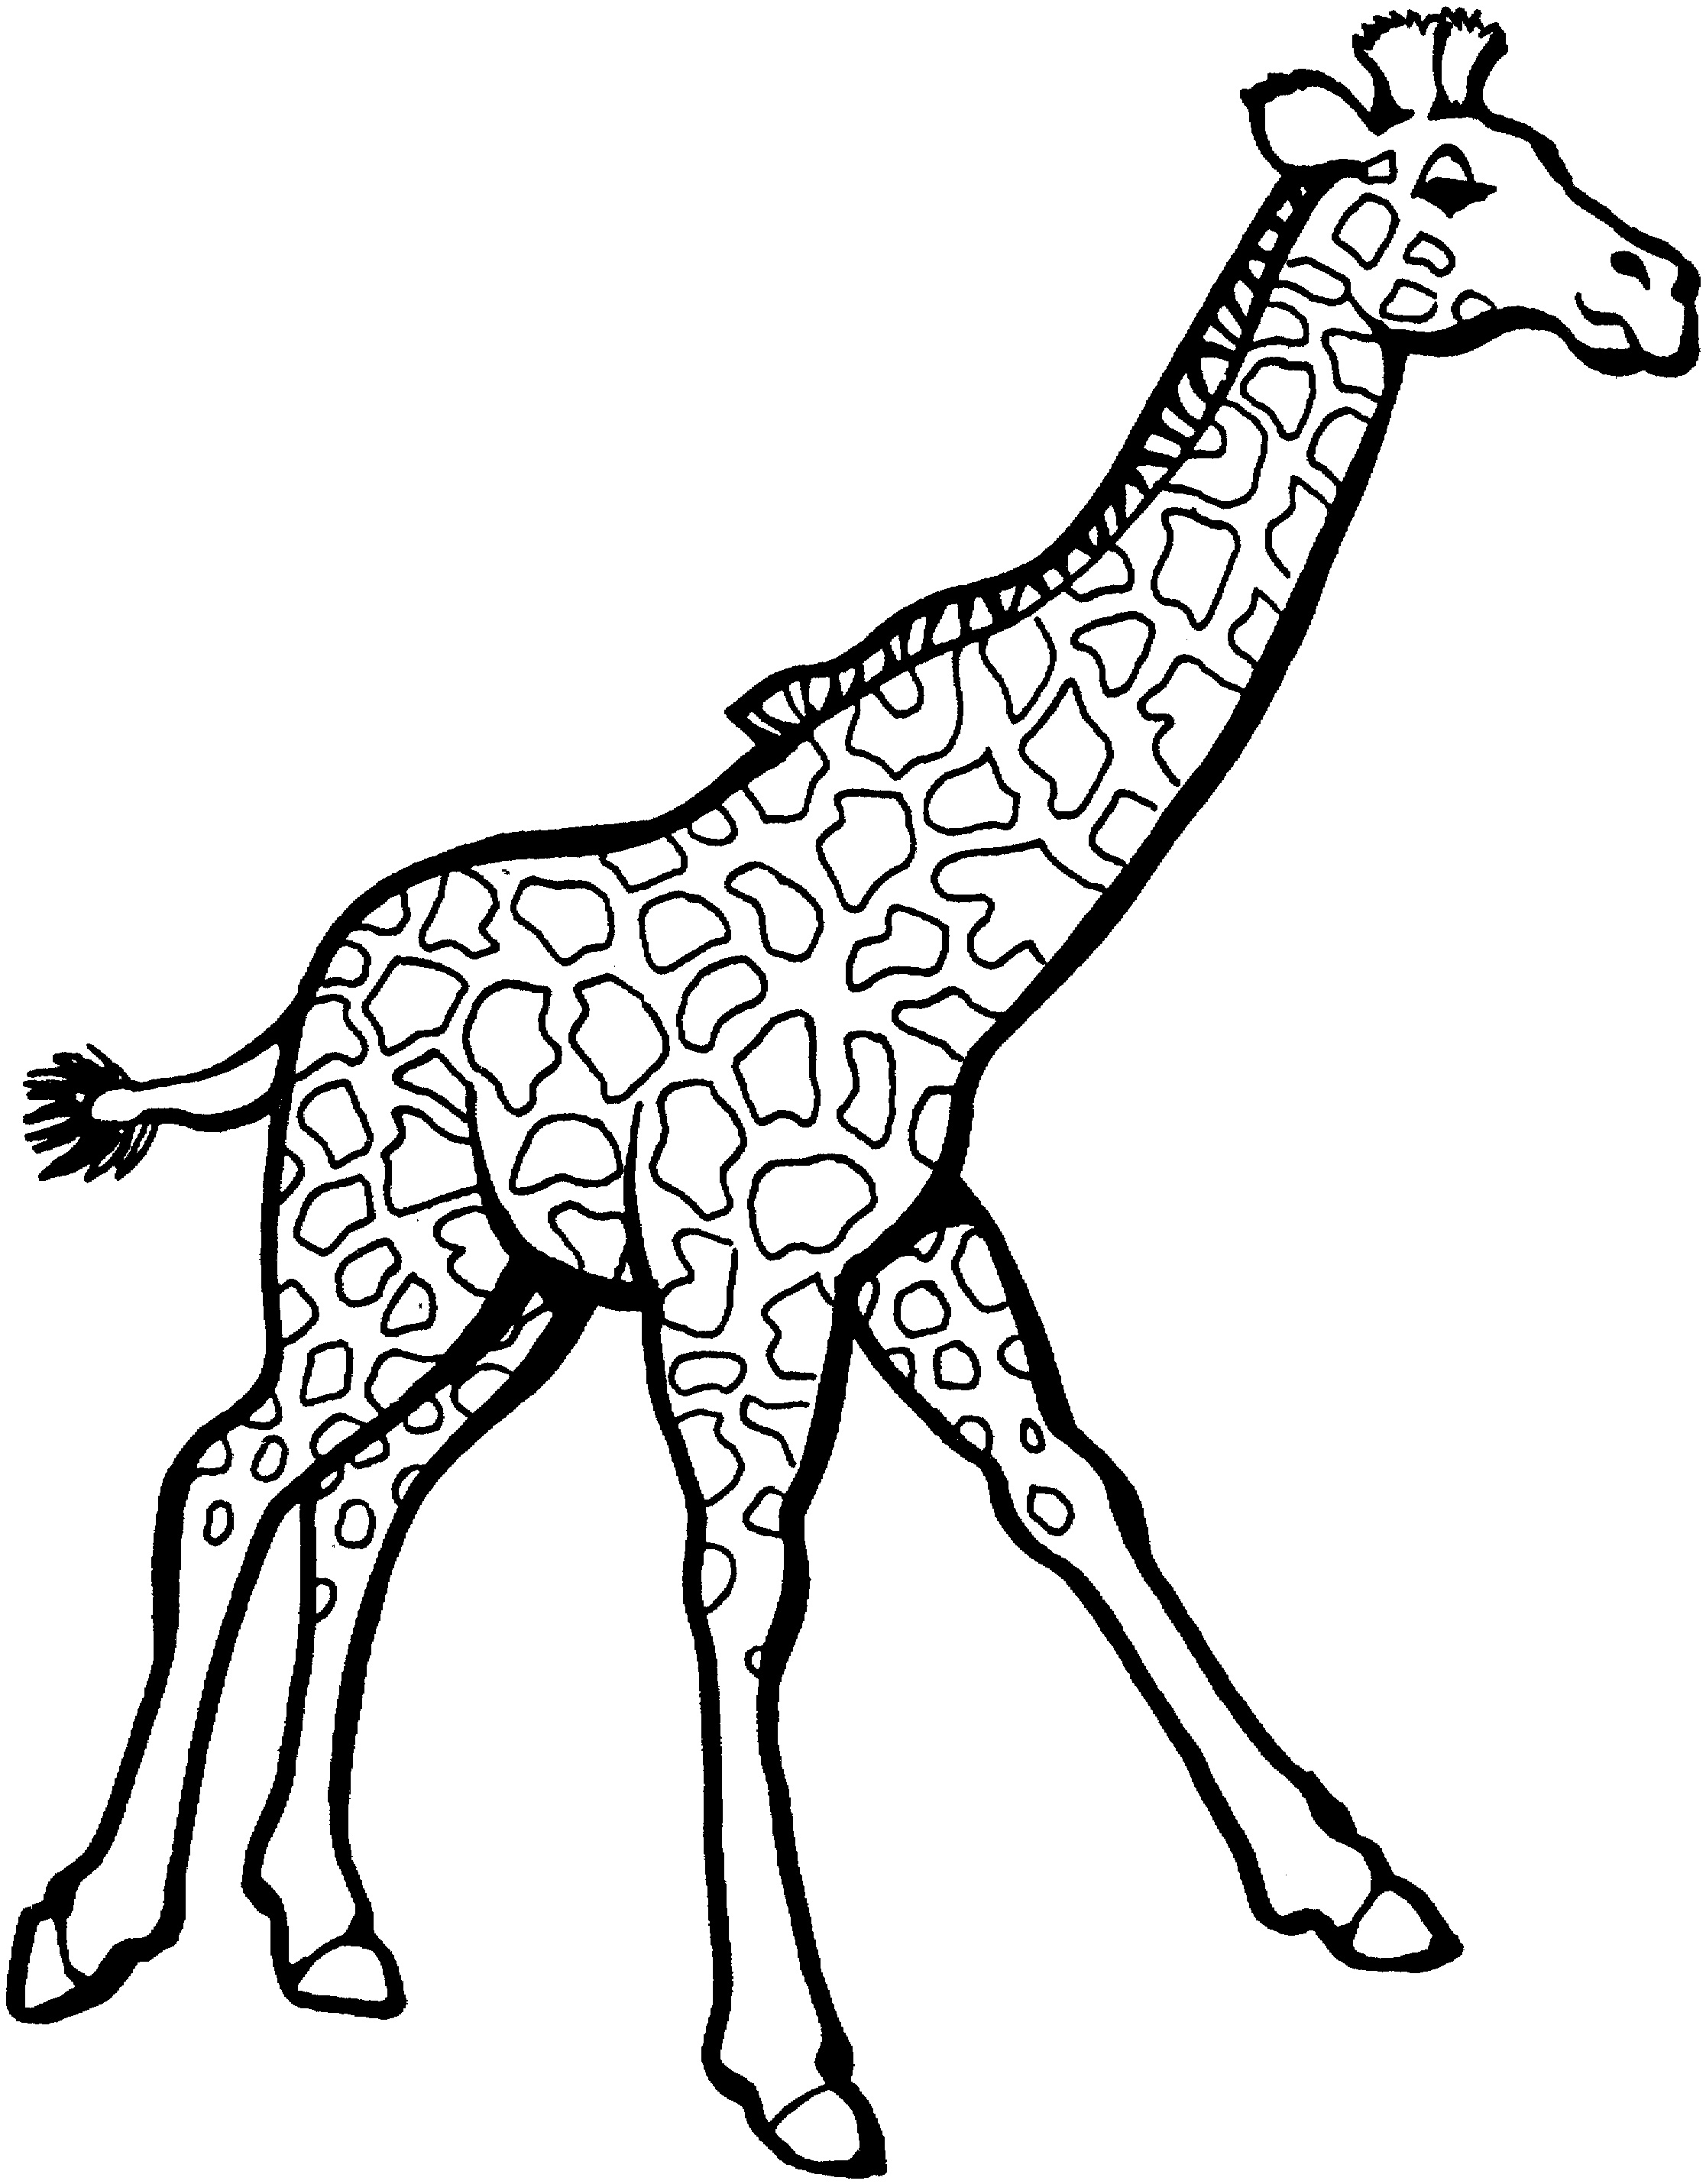 2233x2859 Giraffe Colouring Pages Tags Giraffe Colouring Page How To Draw